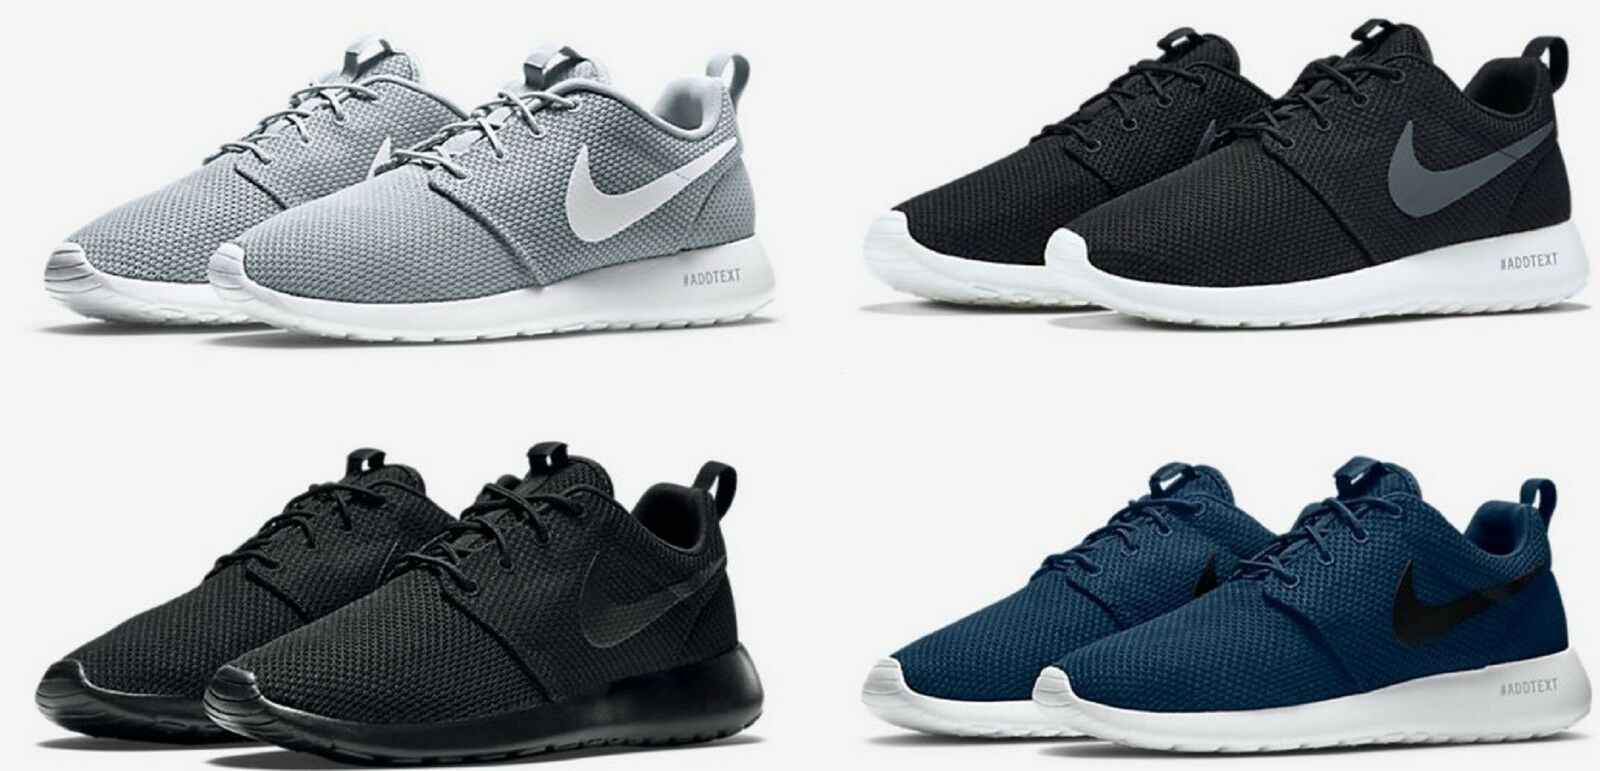 NIKE NEW MEN'S NIKE ROSHE ONE SNEAKERS RUNNING SHOES  LIFESTYLE SNEAKERS ONE 41a4b1